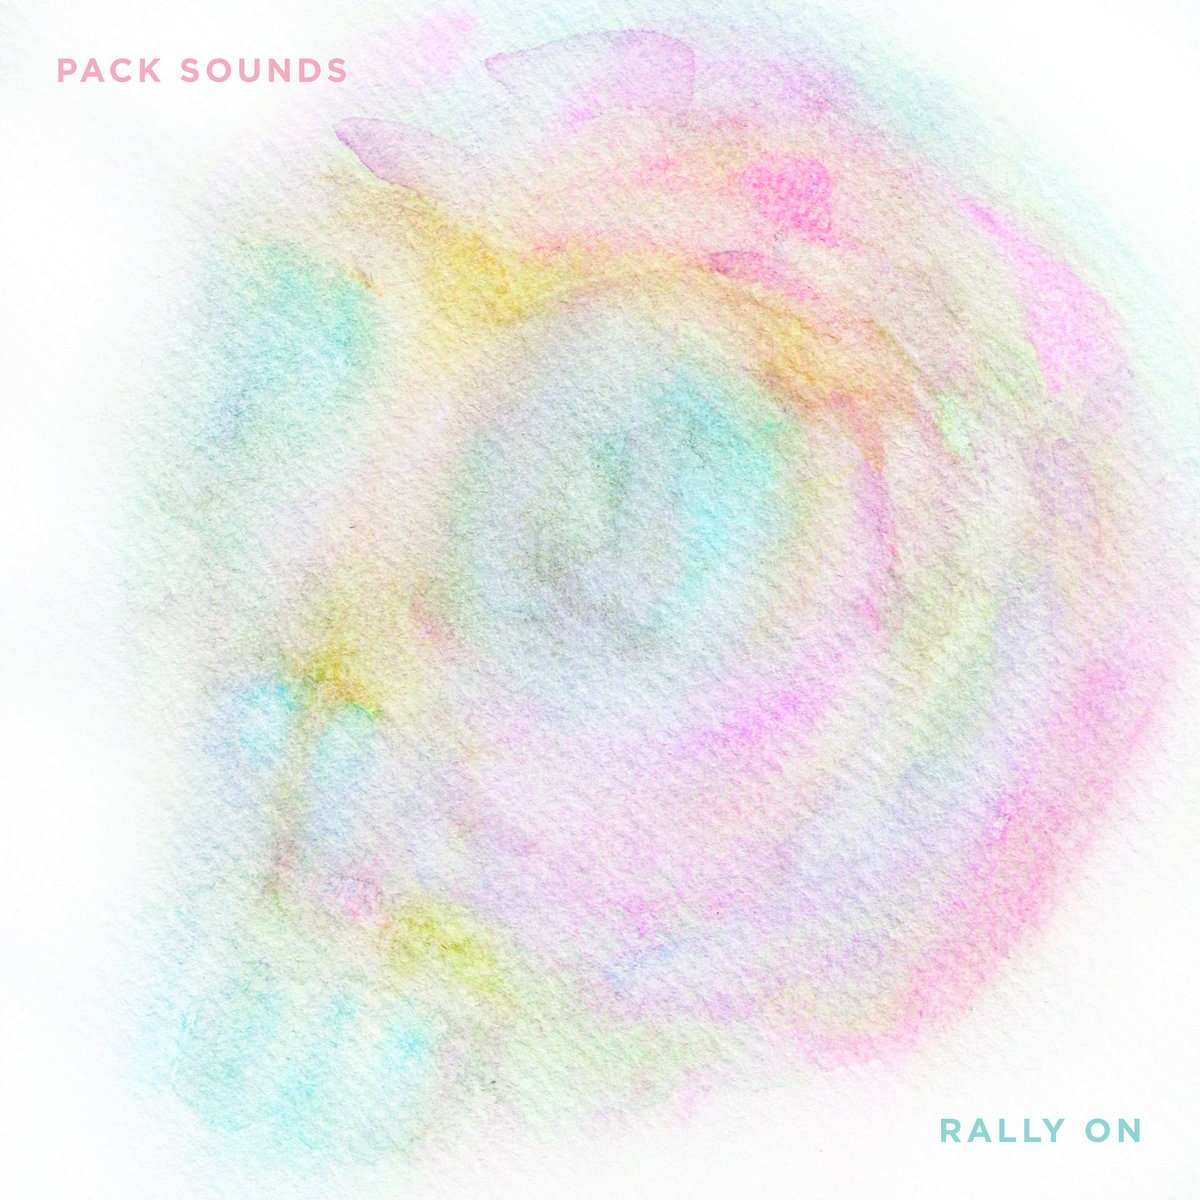 PACK SOUNDS cover by Jon Weed of Cassilis,